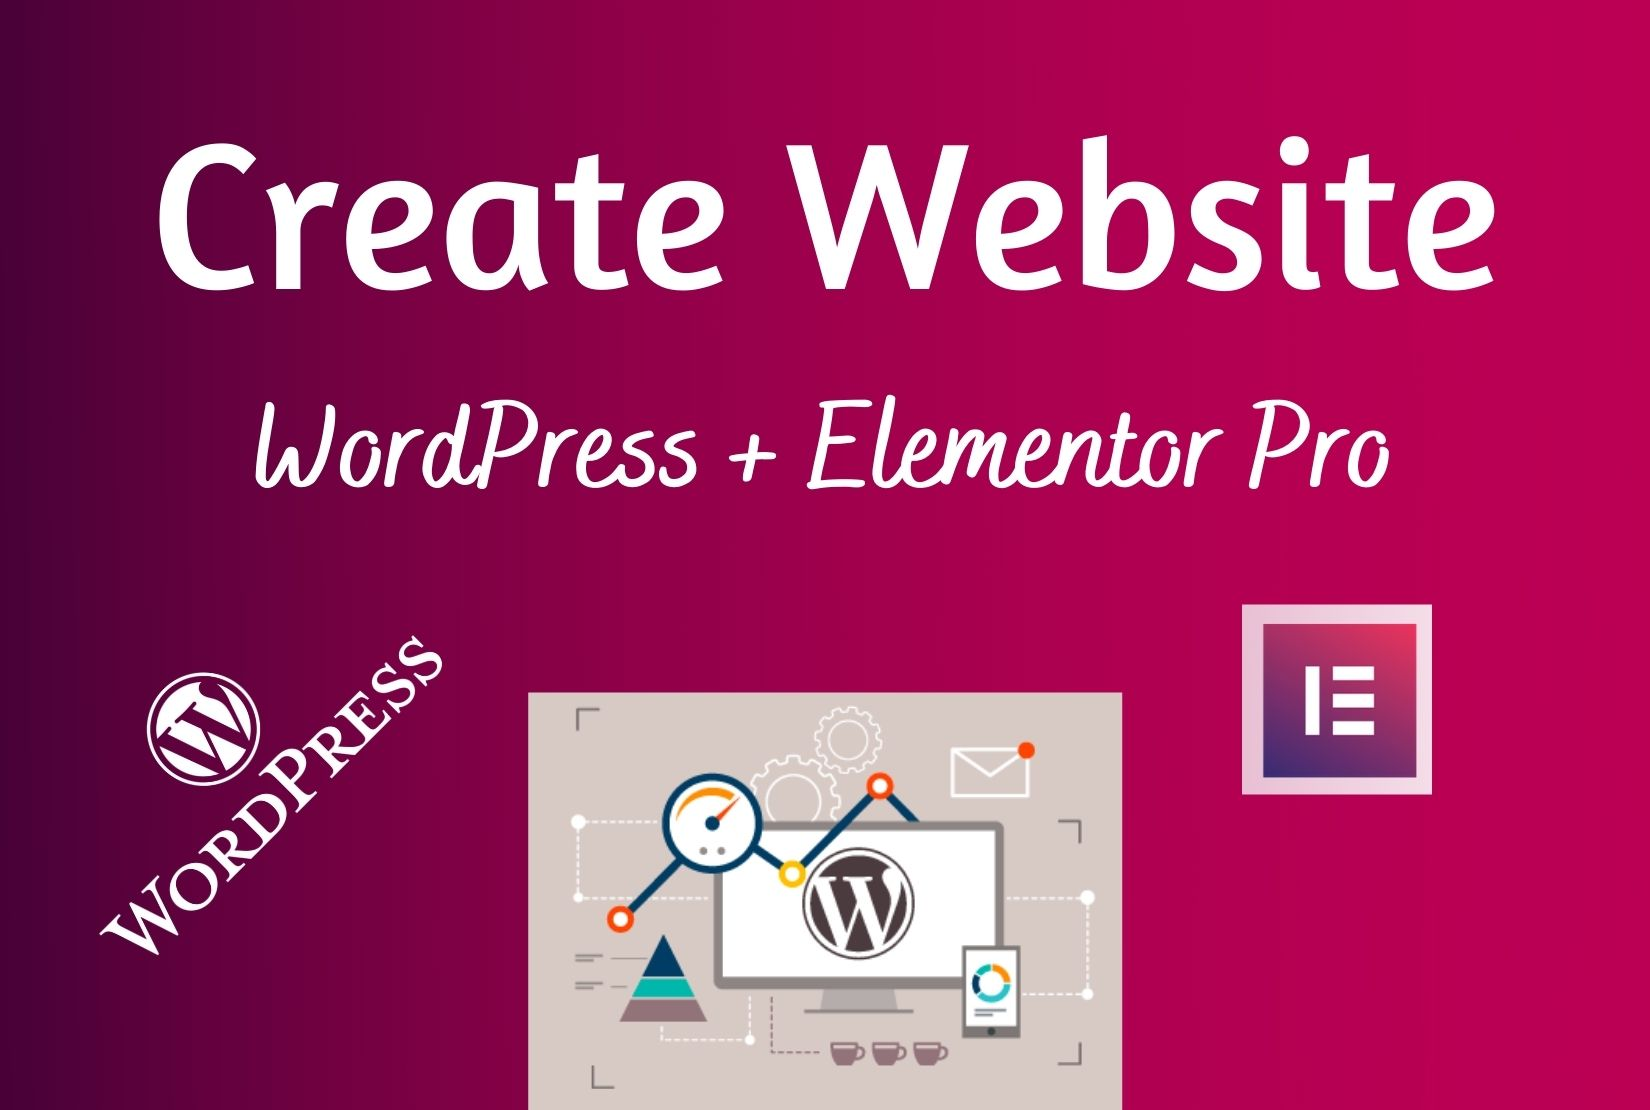 I will make wordpress website by elementor pro in 18 hours